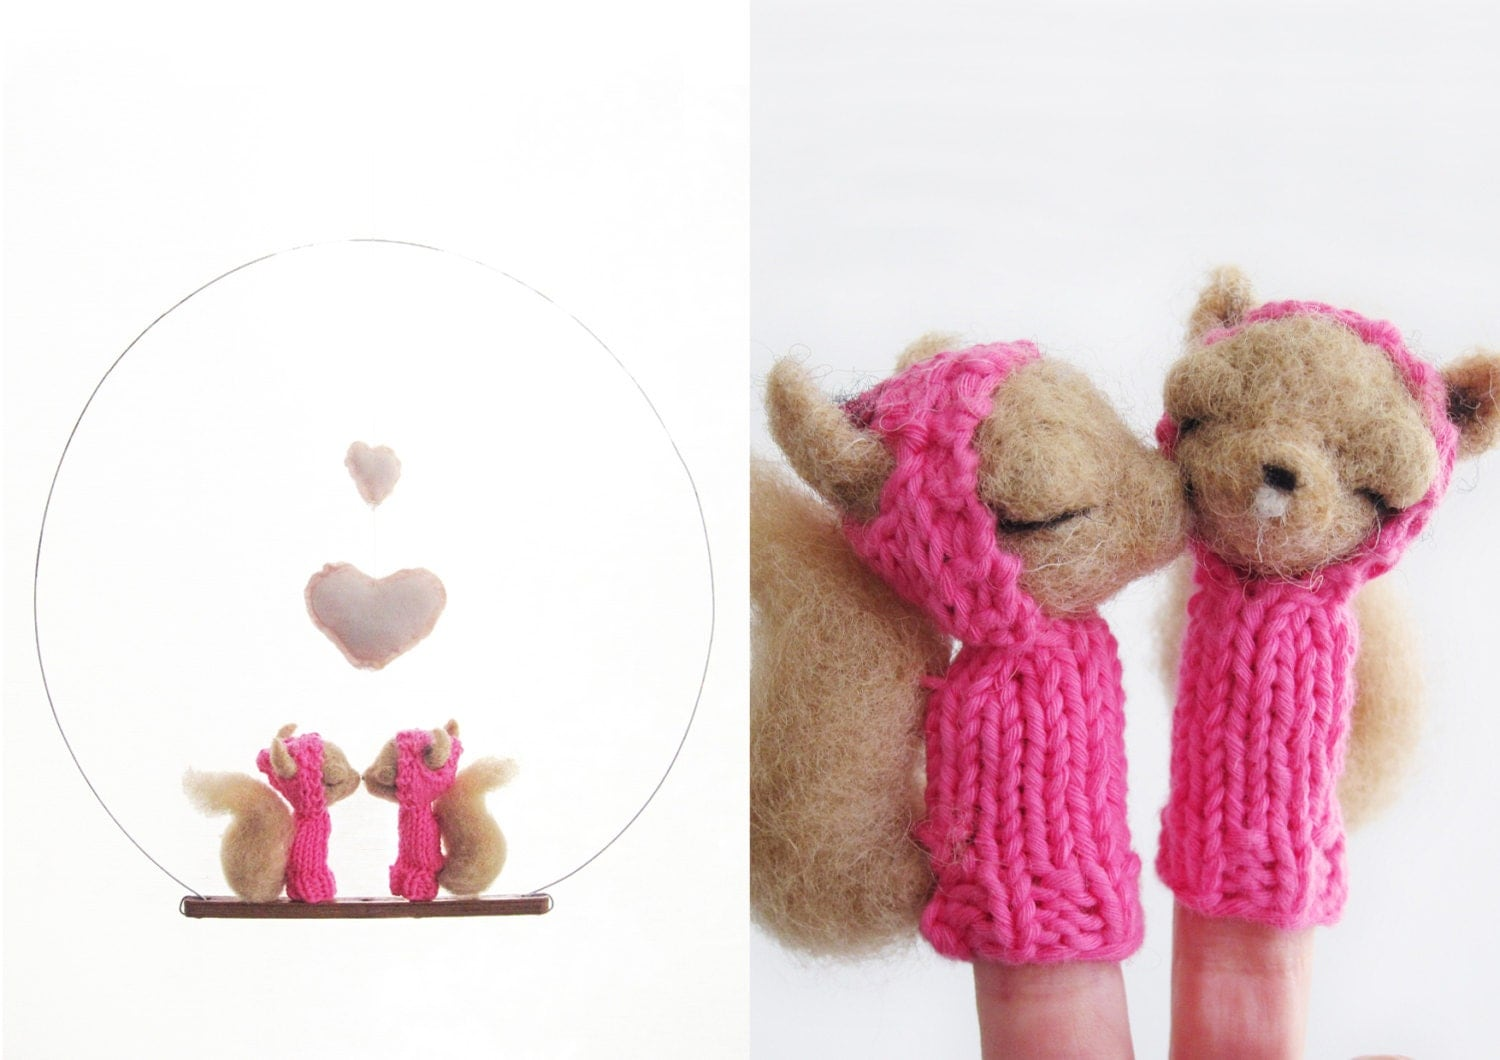 Romantic VALENTINES DAY GIFT, Finger Puppet Mobile, Needle Felted Squirrel Valentines Kissing, Home Decor and a Soft Eco Friendly Toy - LazyAnimals